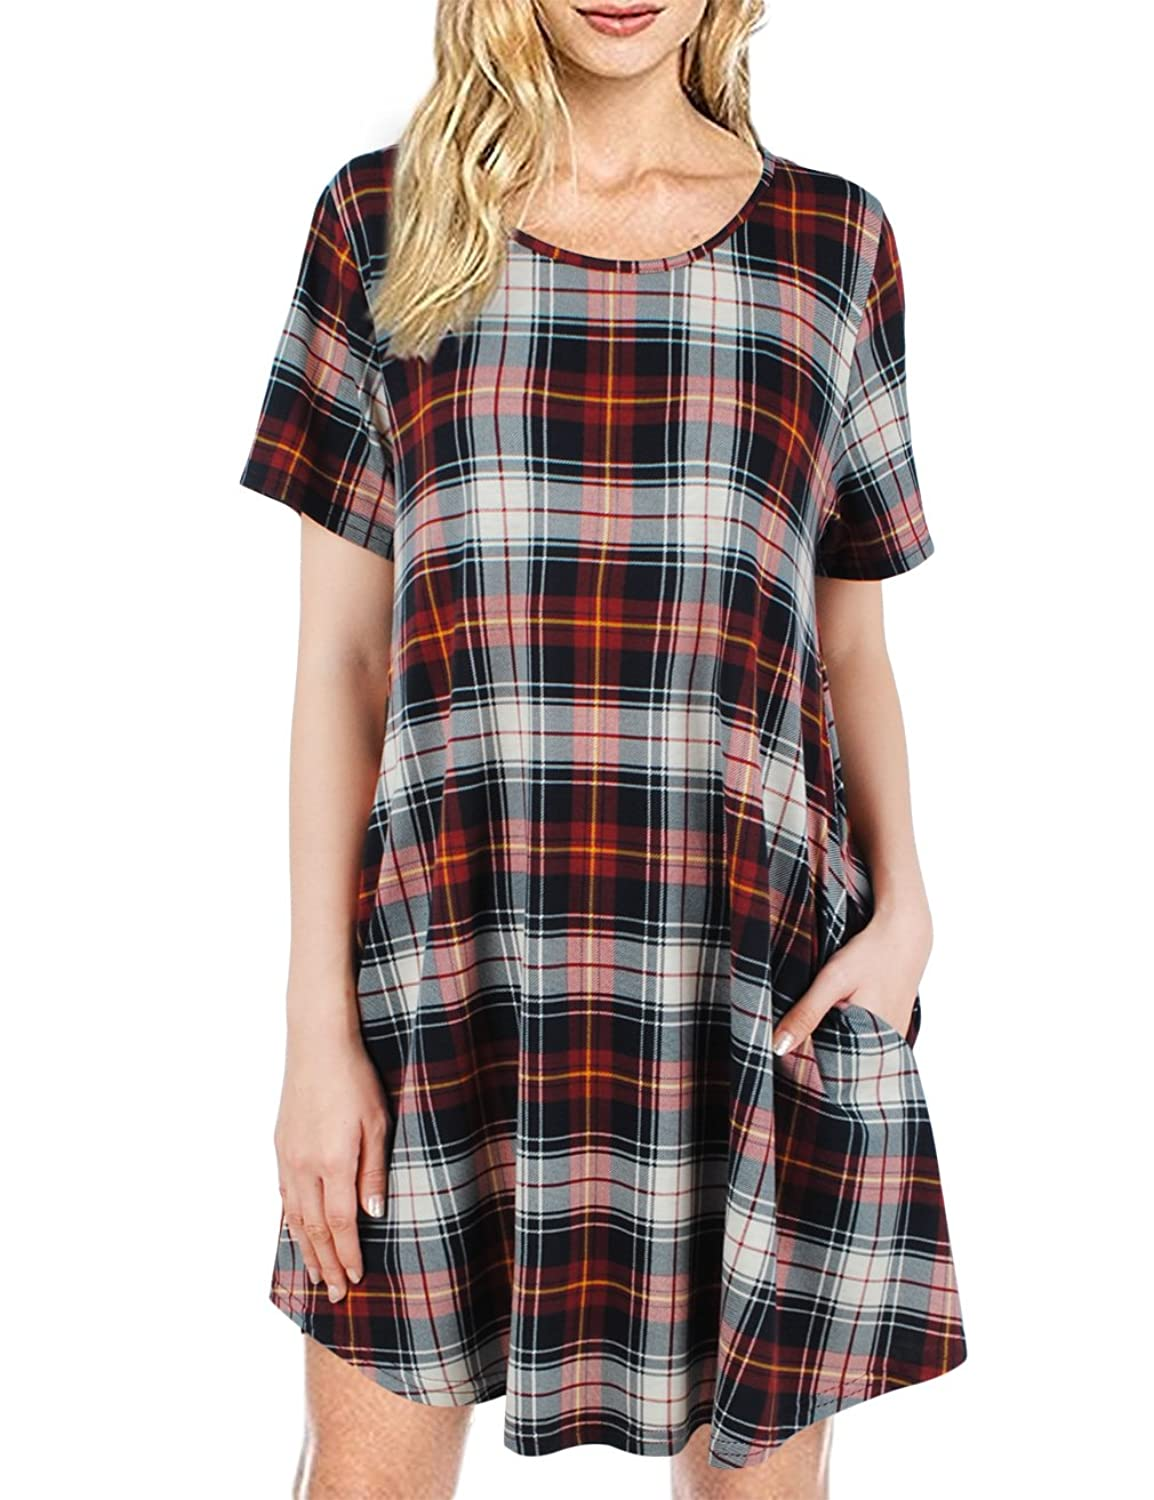 FANSIC Summer Women's Short Sleeve Swing Tunic Plaid T-Shirt Dress With Pocket